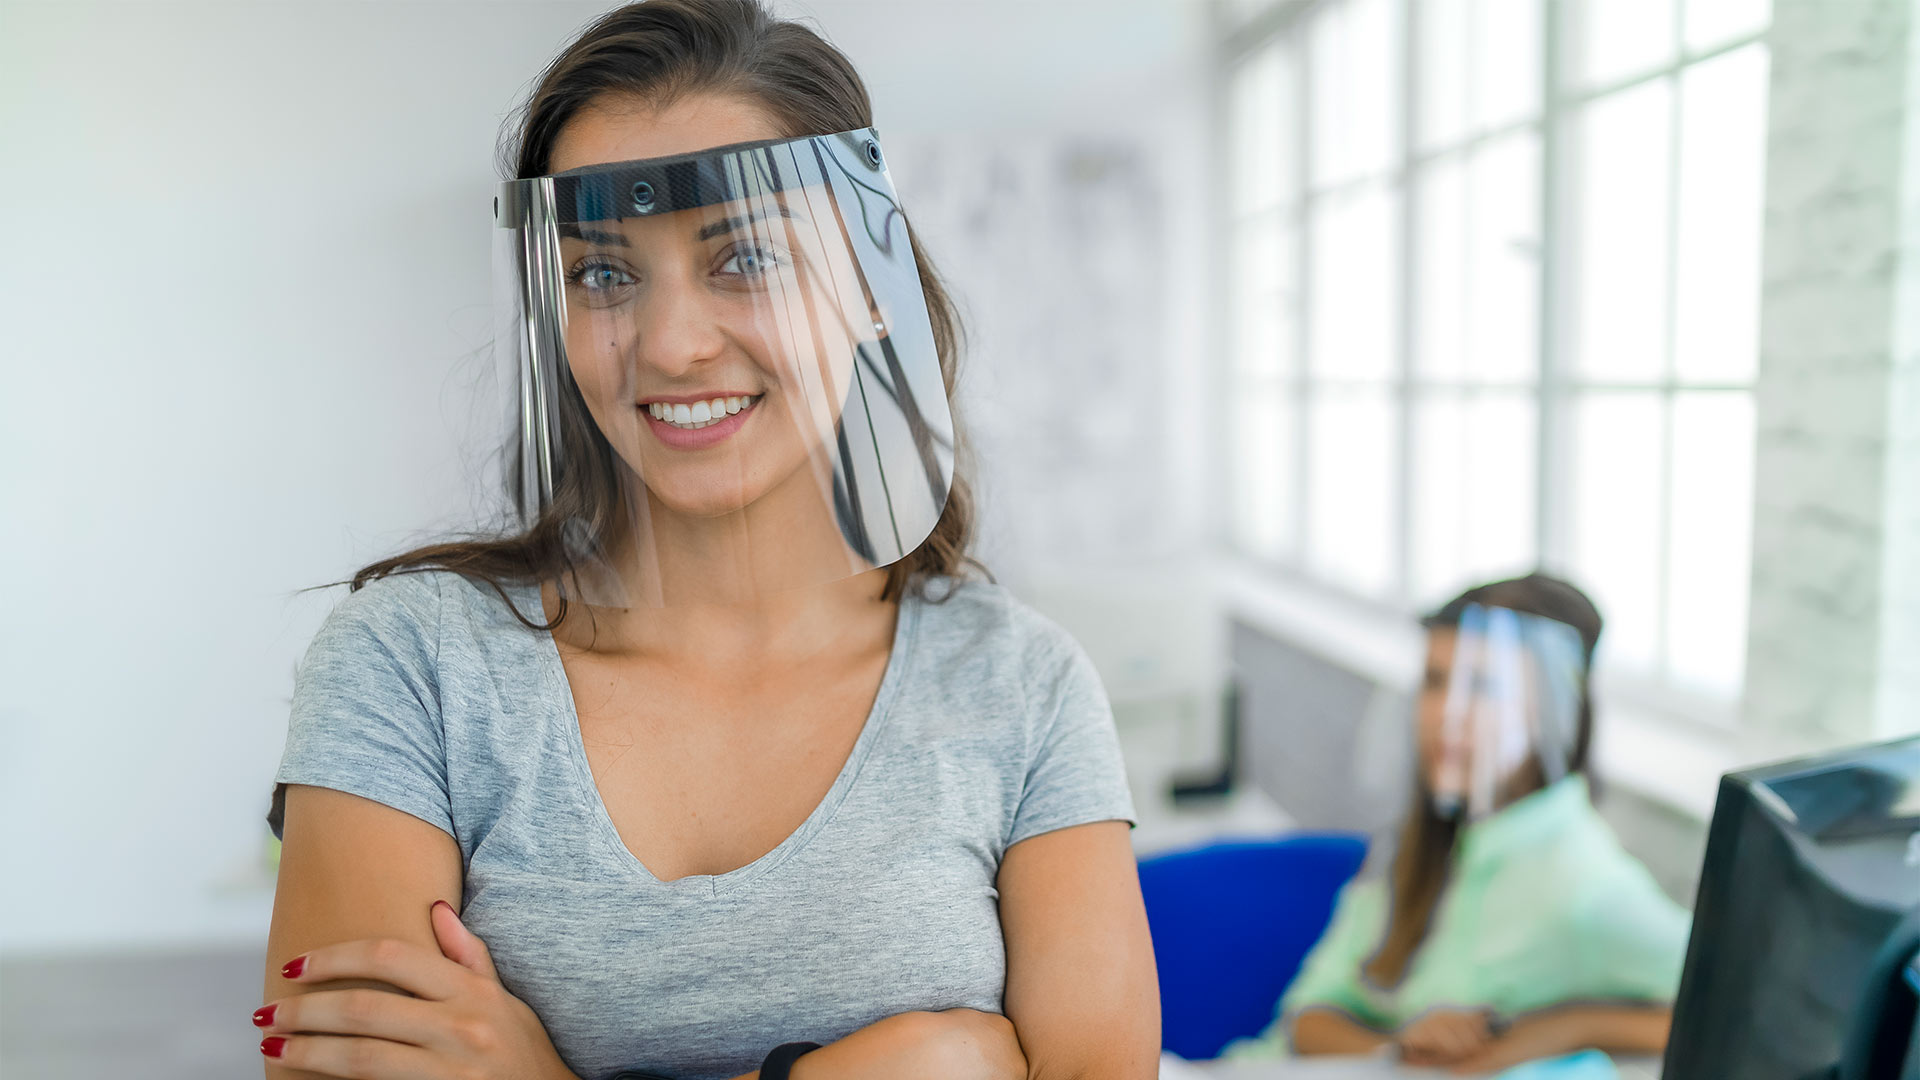 Woman wearing face shield